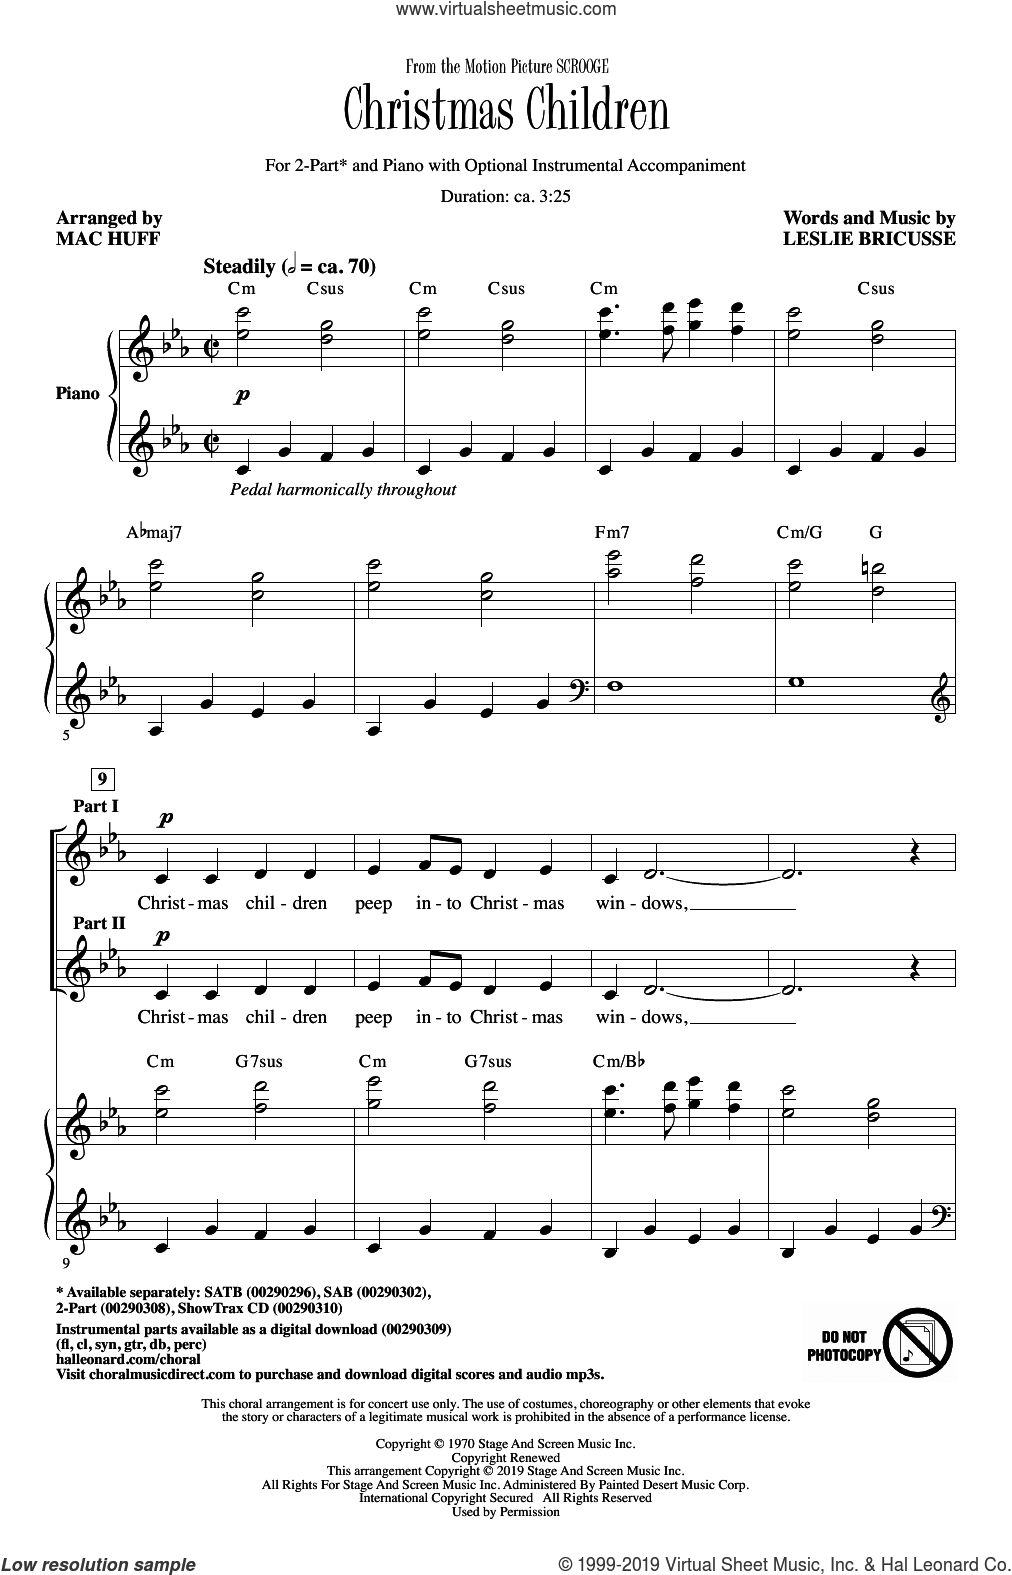 Christmas Children (from Scrooge) (arr. Mac Huff) sheet music for choir (2-Part) by Leslie Bricusse and Mac Huff, intermediate duet